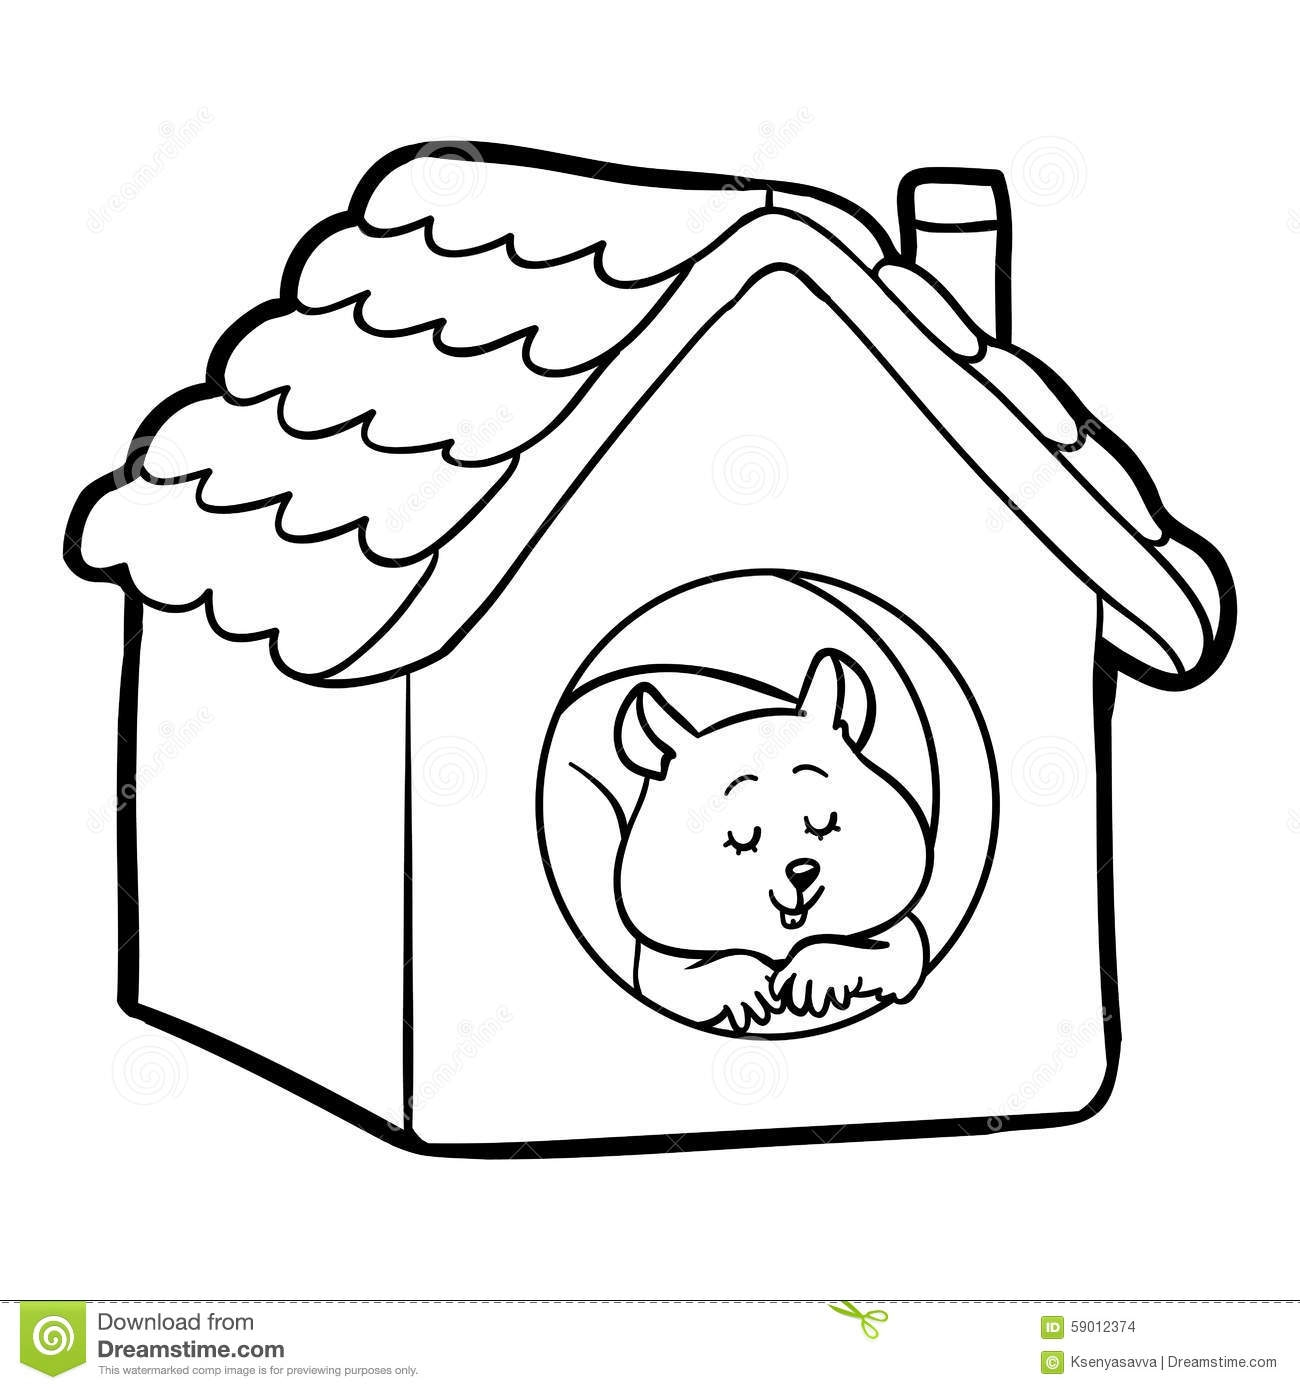 united states coloring page - stock illustration coloring book children hamster house image